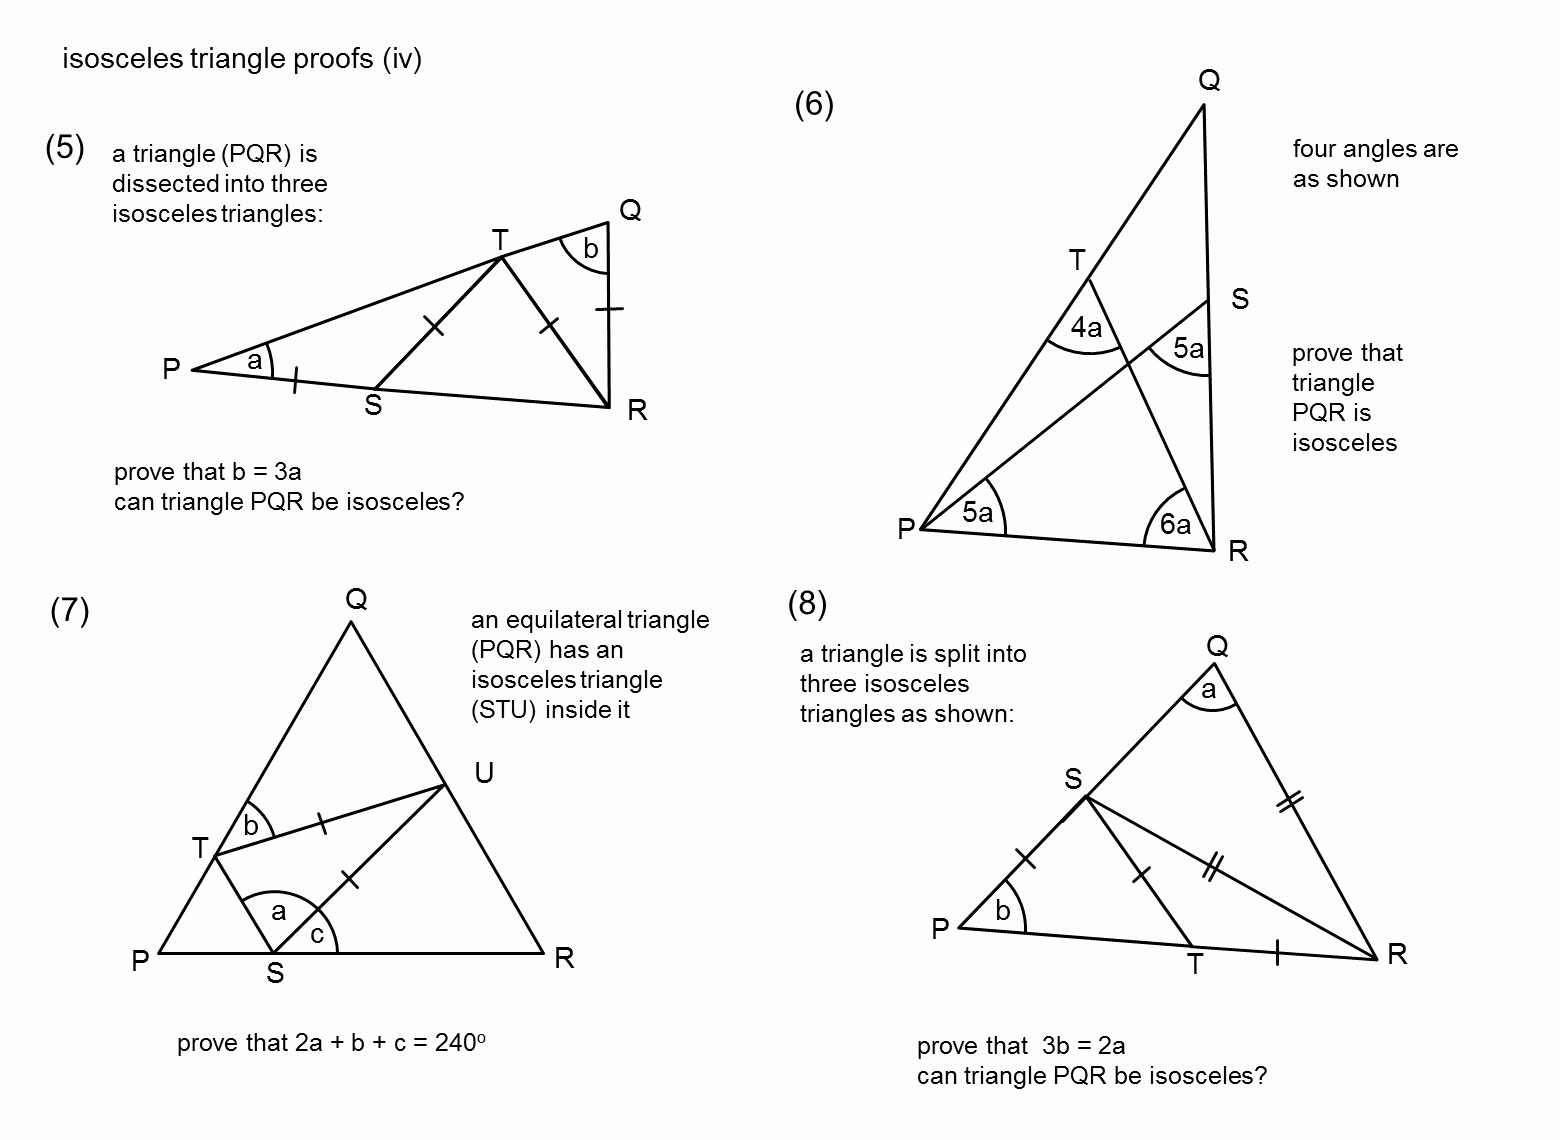 Triangle Proofs Worksheet Answers Awesome Median Don Steward Mathematics Teaching isosceles Triangles